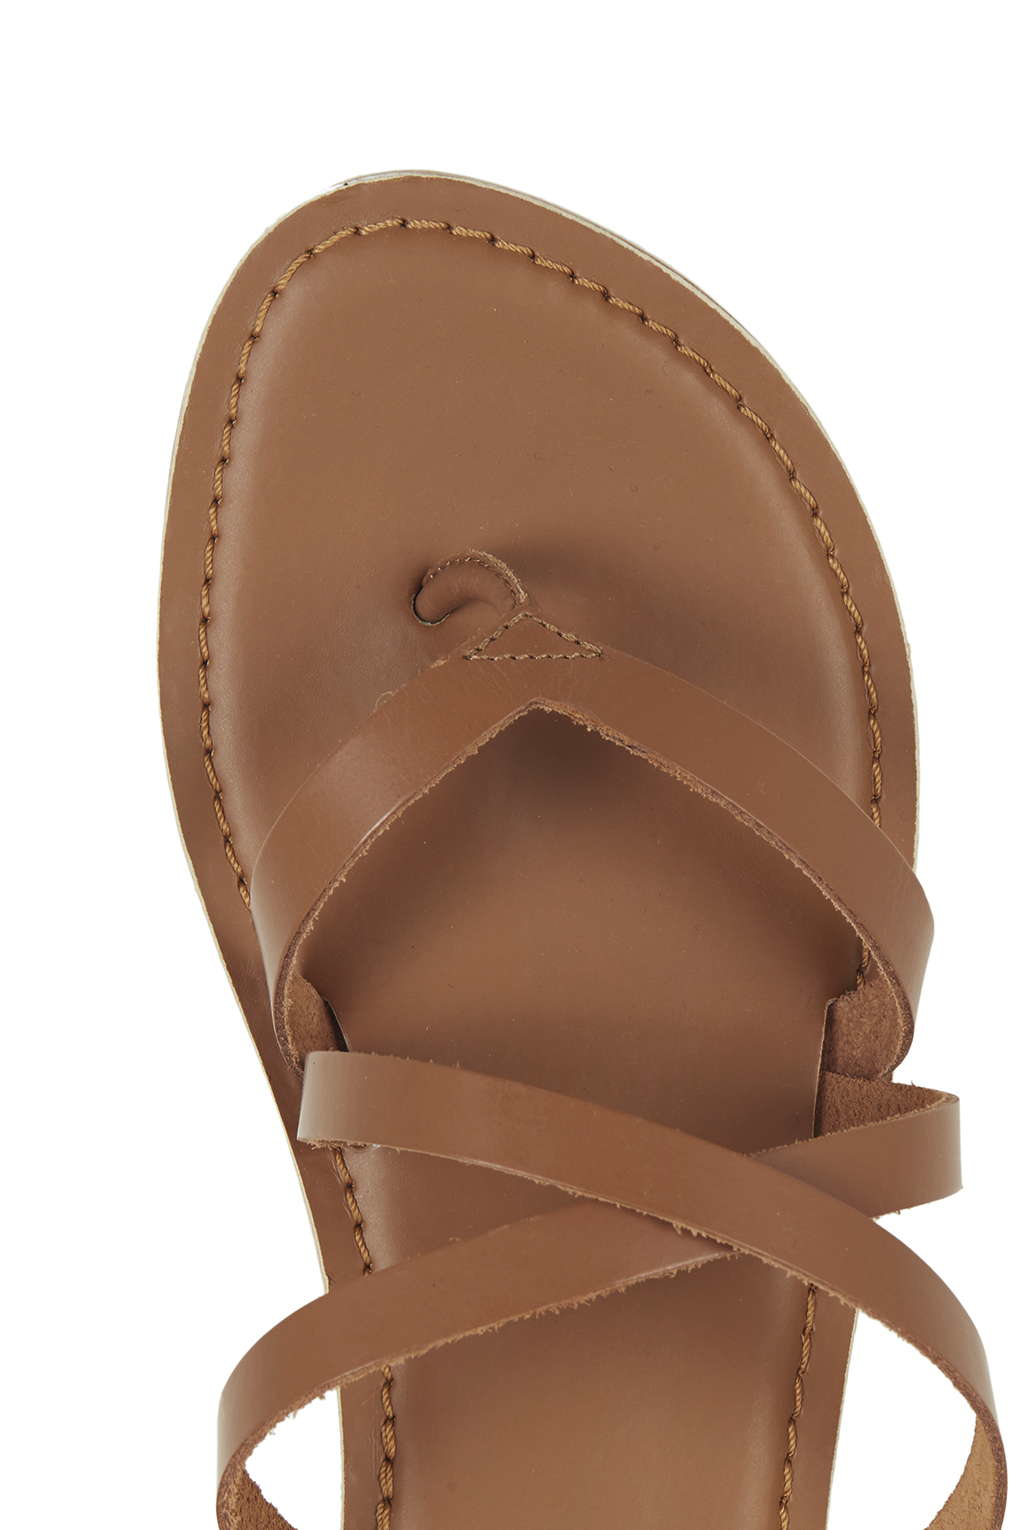 566c177f9dc3 Lyst - TOPSHOP Hercules Strappy Leather Sandals in Brown